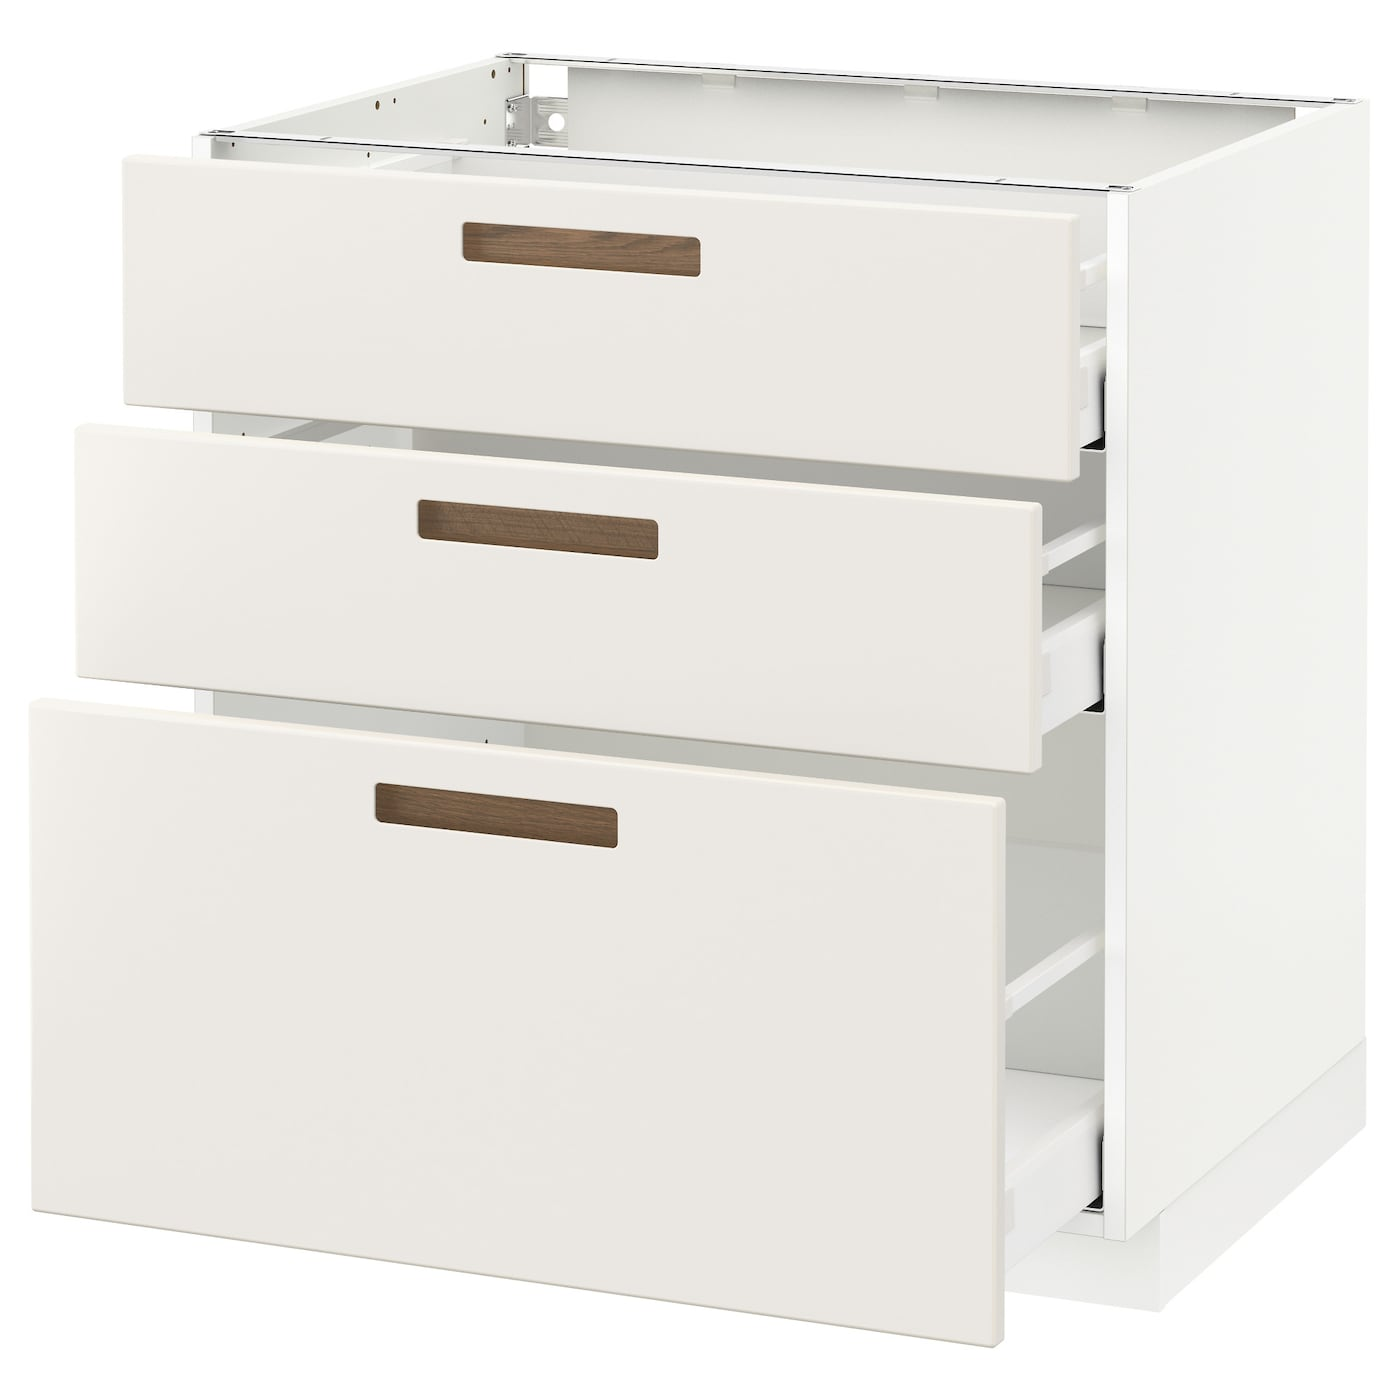 metod maximera base cabinet with 3 drawers white m rsta white 80 x 60 cm ikea. Black Bedroom Furniture Sets. Home Design Ideas